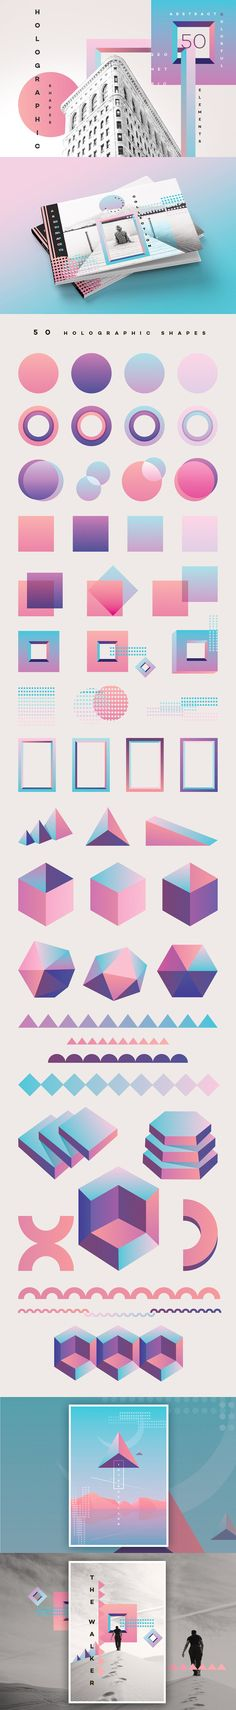 50 Holographic Shapes by Polar Vectors on These colorful geometric shapes can be used in poster concepts, brochure designs, branding and so much more. Layout Design, Graphisches Design, Design Elements, Print Design, Logo Design, Shape Design, Modern Design, Poster Design, Photocollage